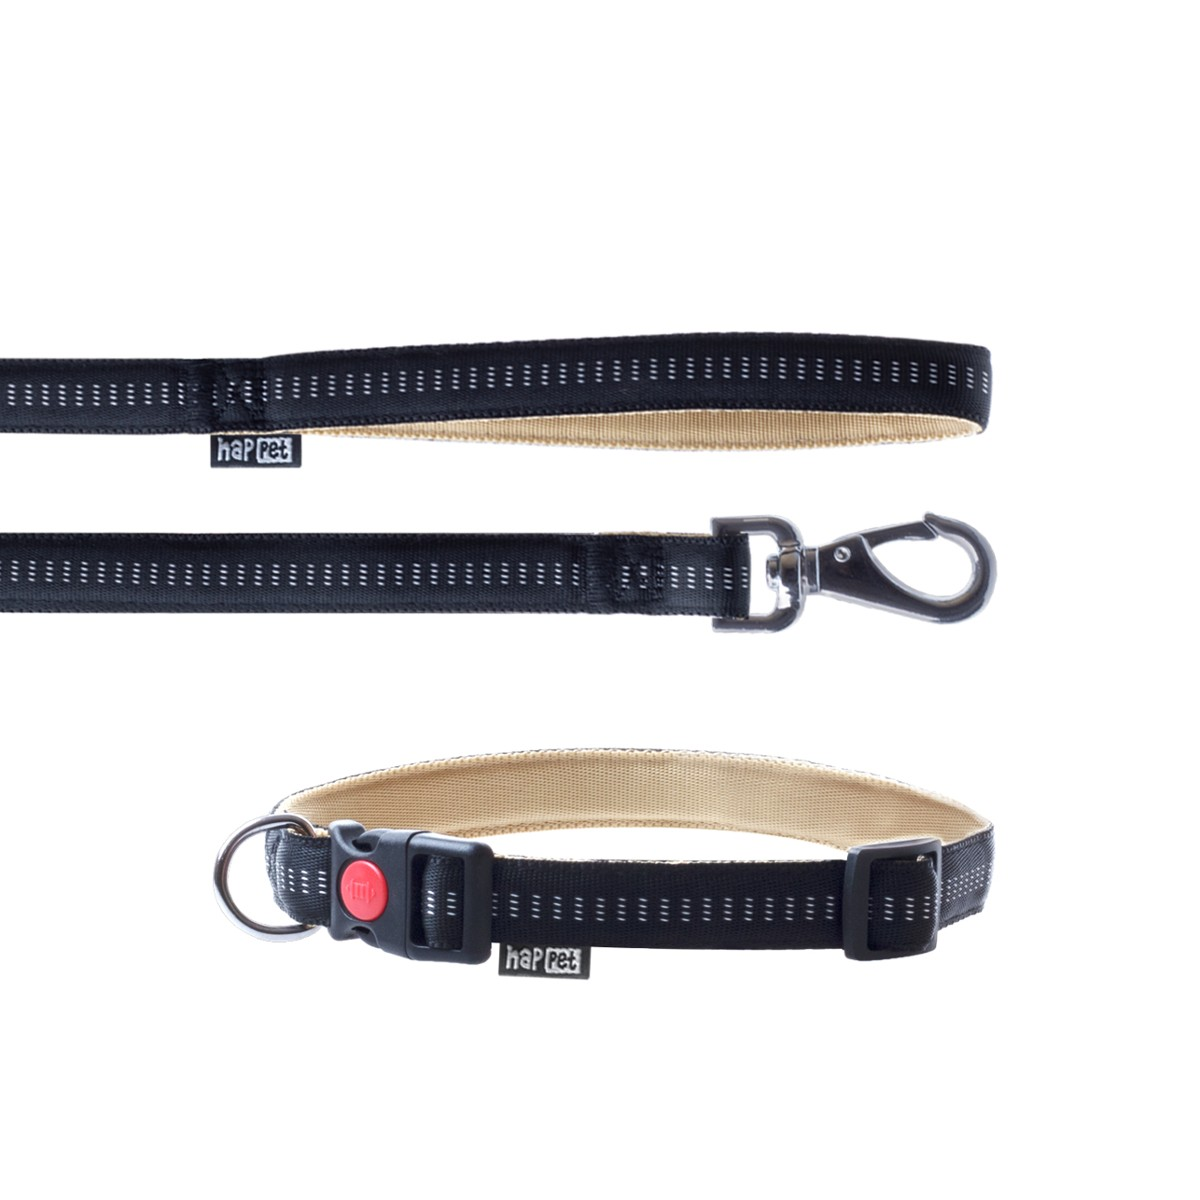 Nylon S Leash & Collar Set / Soft Style / Black - Happet JB41